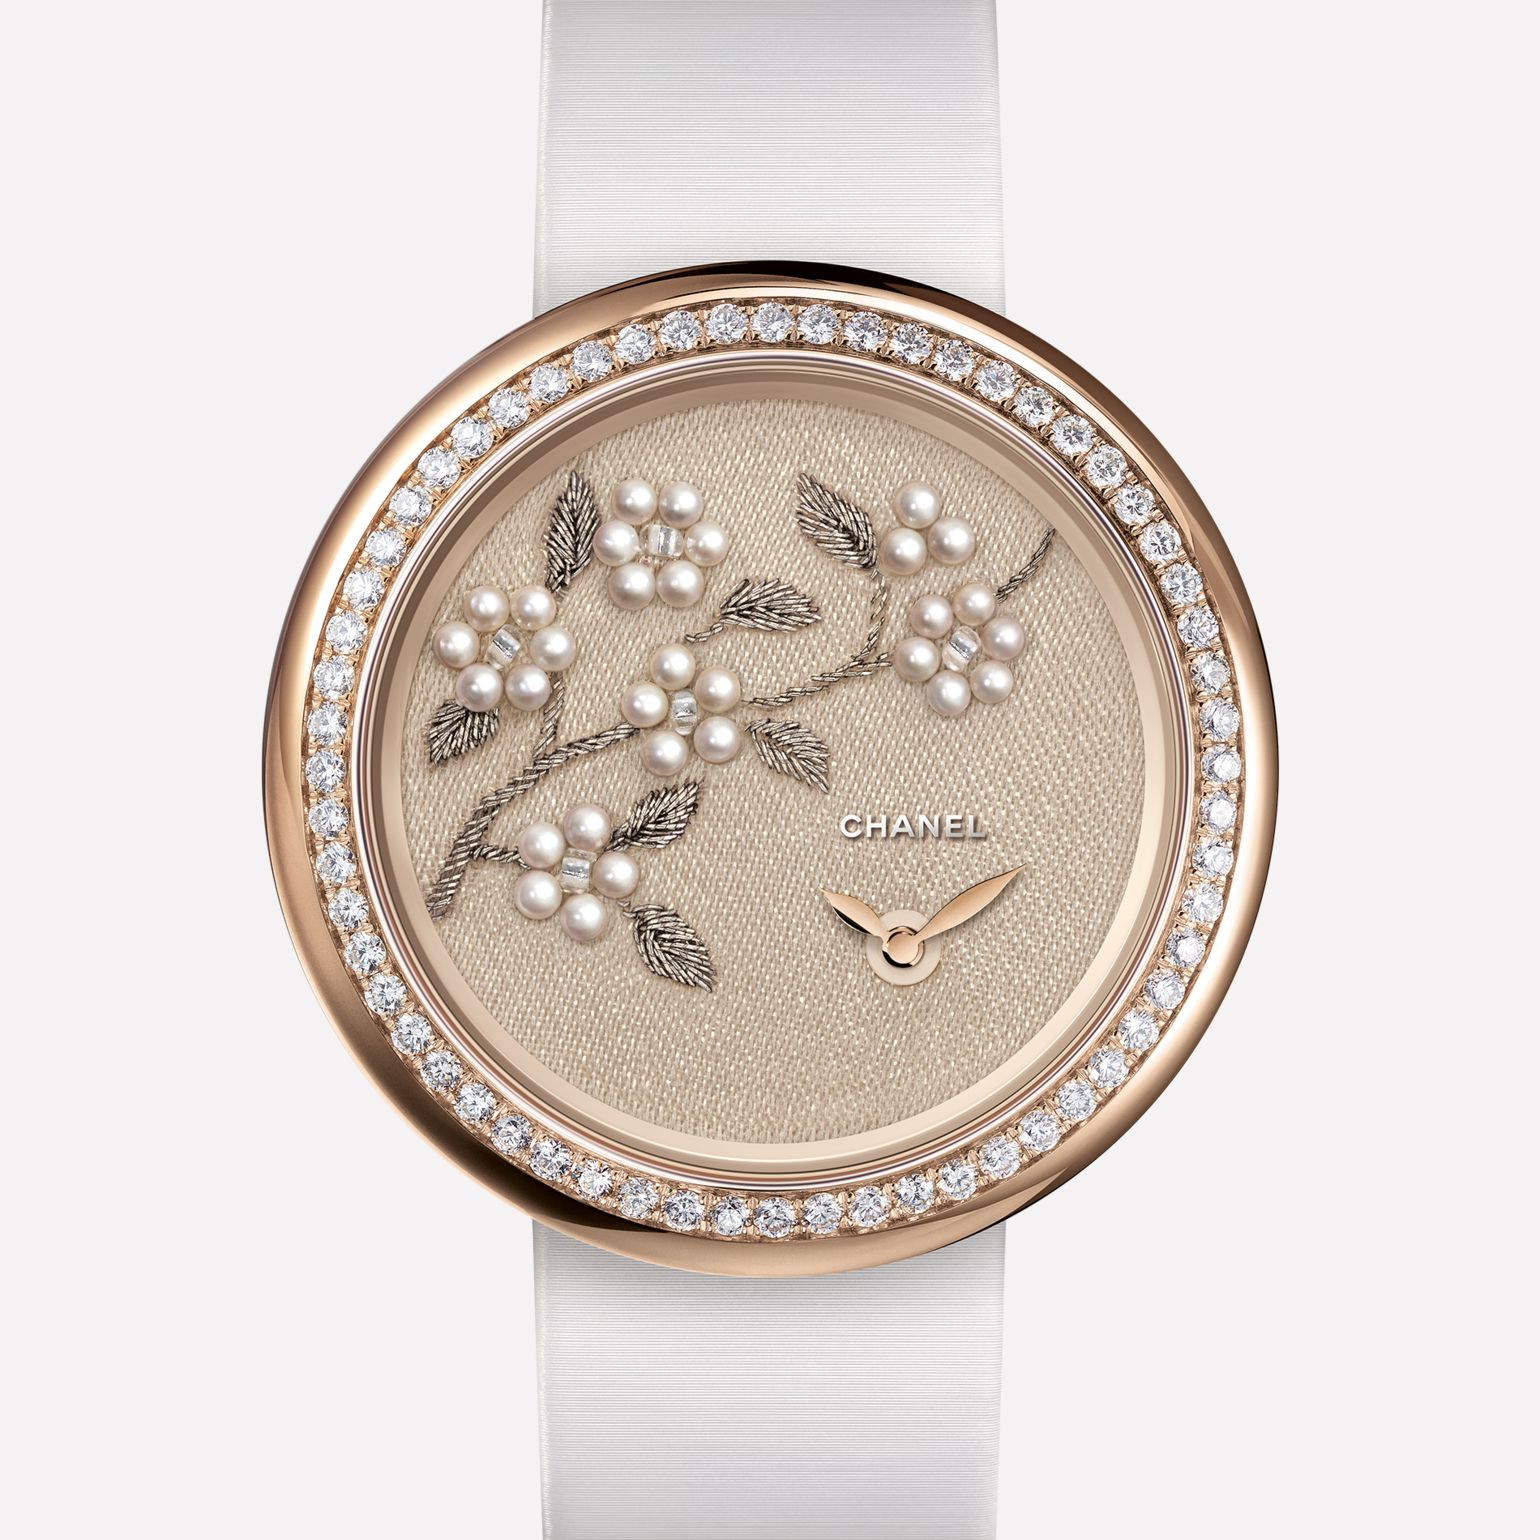 Mademoiselle Privé Watch Camellia branch in gold thread, fine pearls, and glass beads - Lesage embroidery